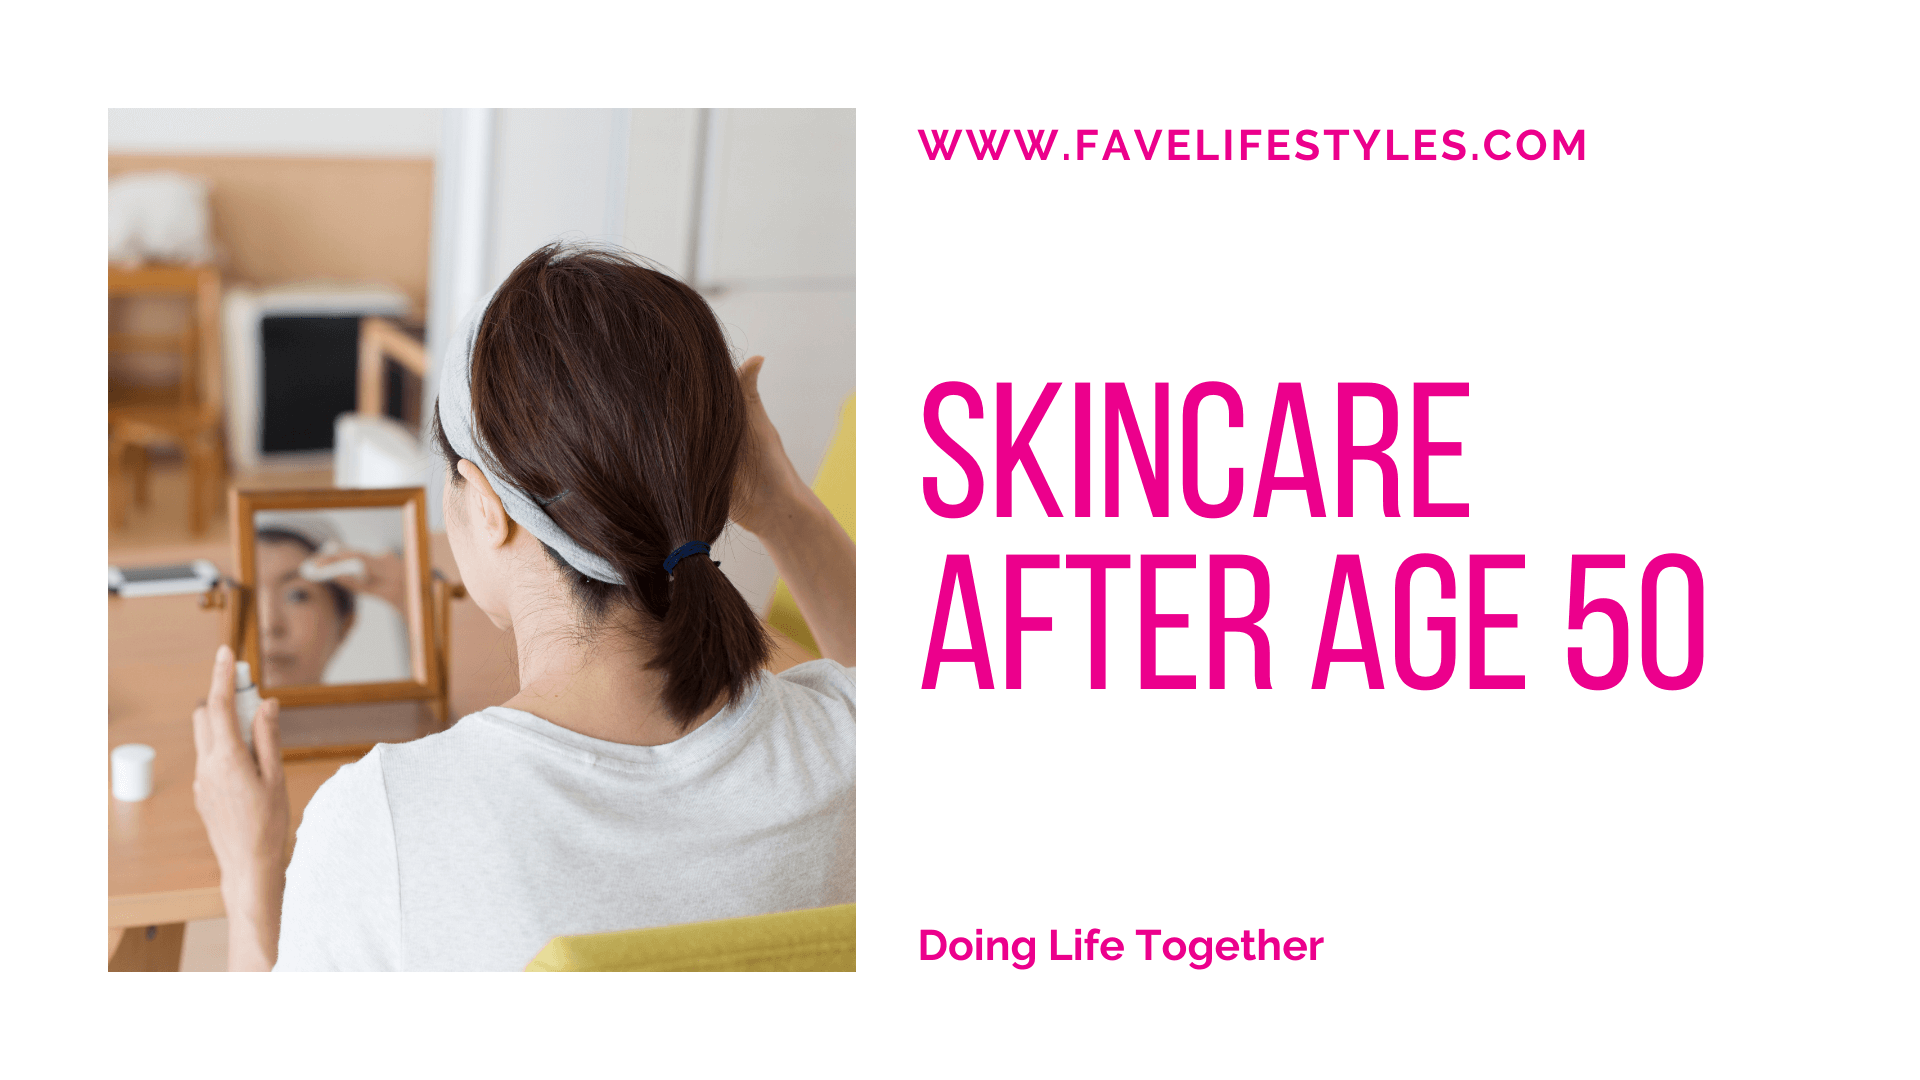 Skincare after Age 50